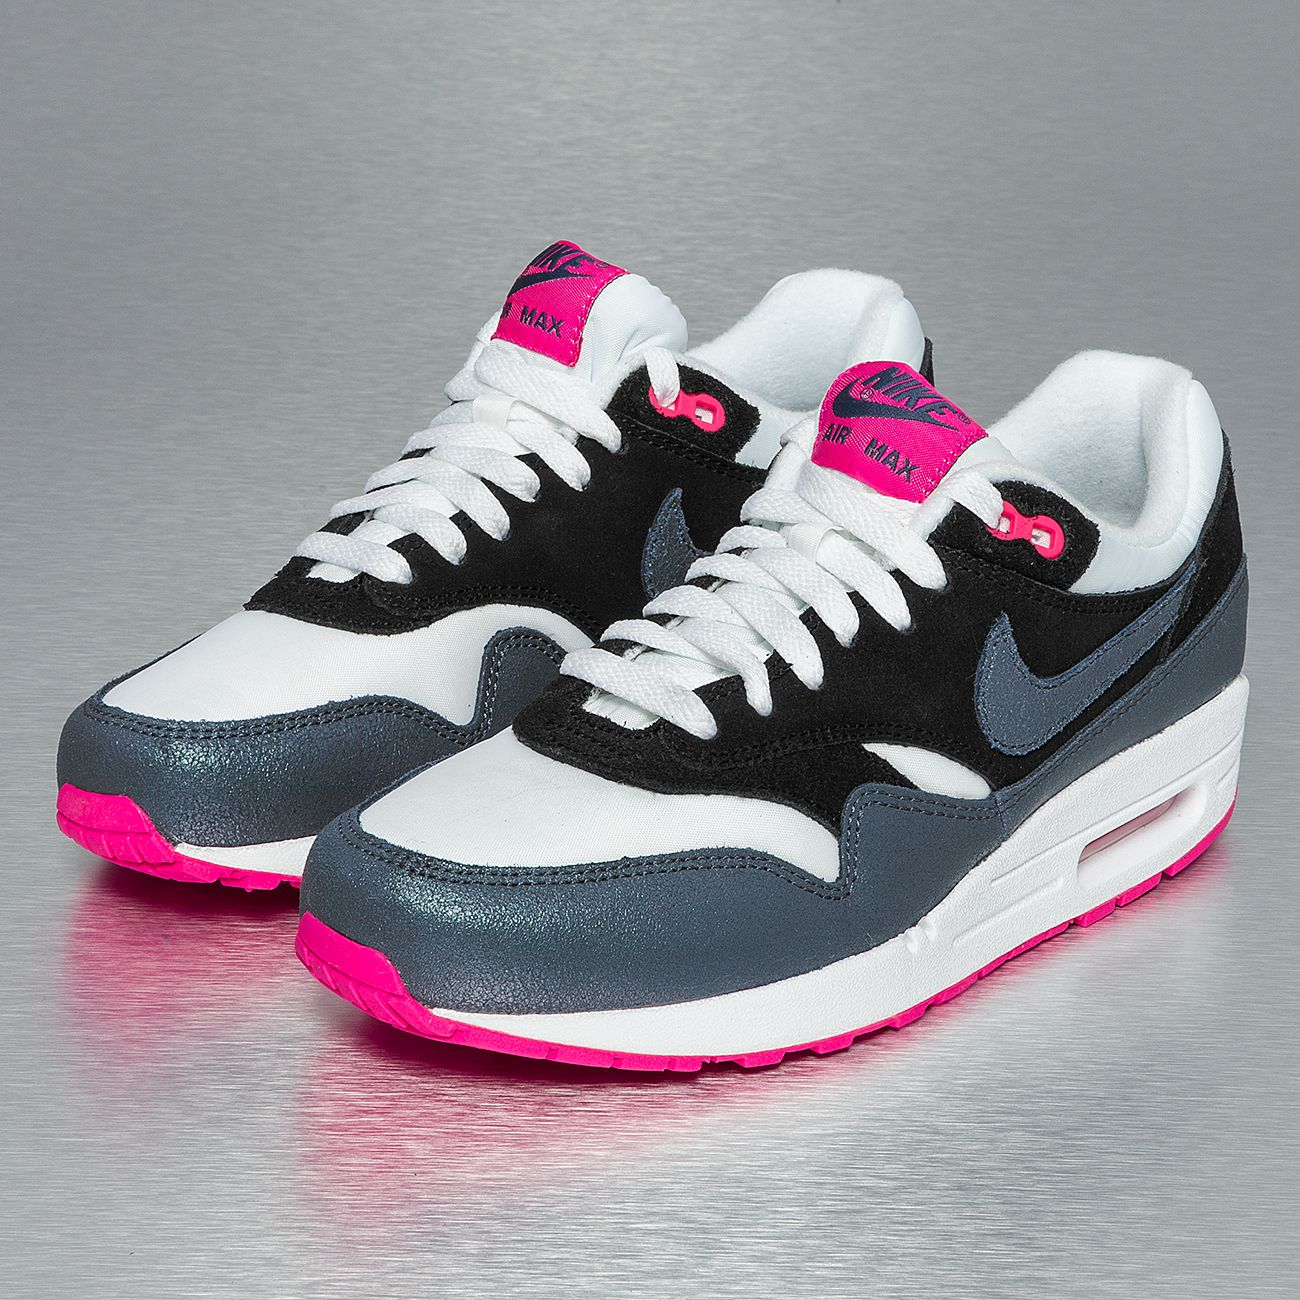 buy online a884b 43ce5 Nike Air Max 1 Essential Sneakers White/Dark Armory Blue/Pink Flash/Black